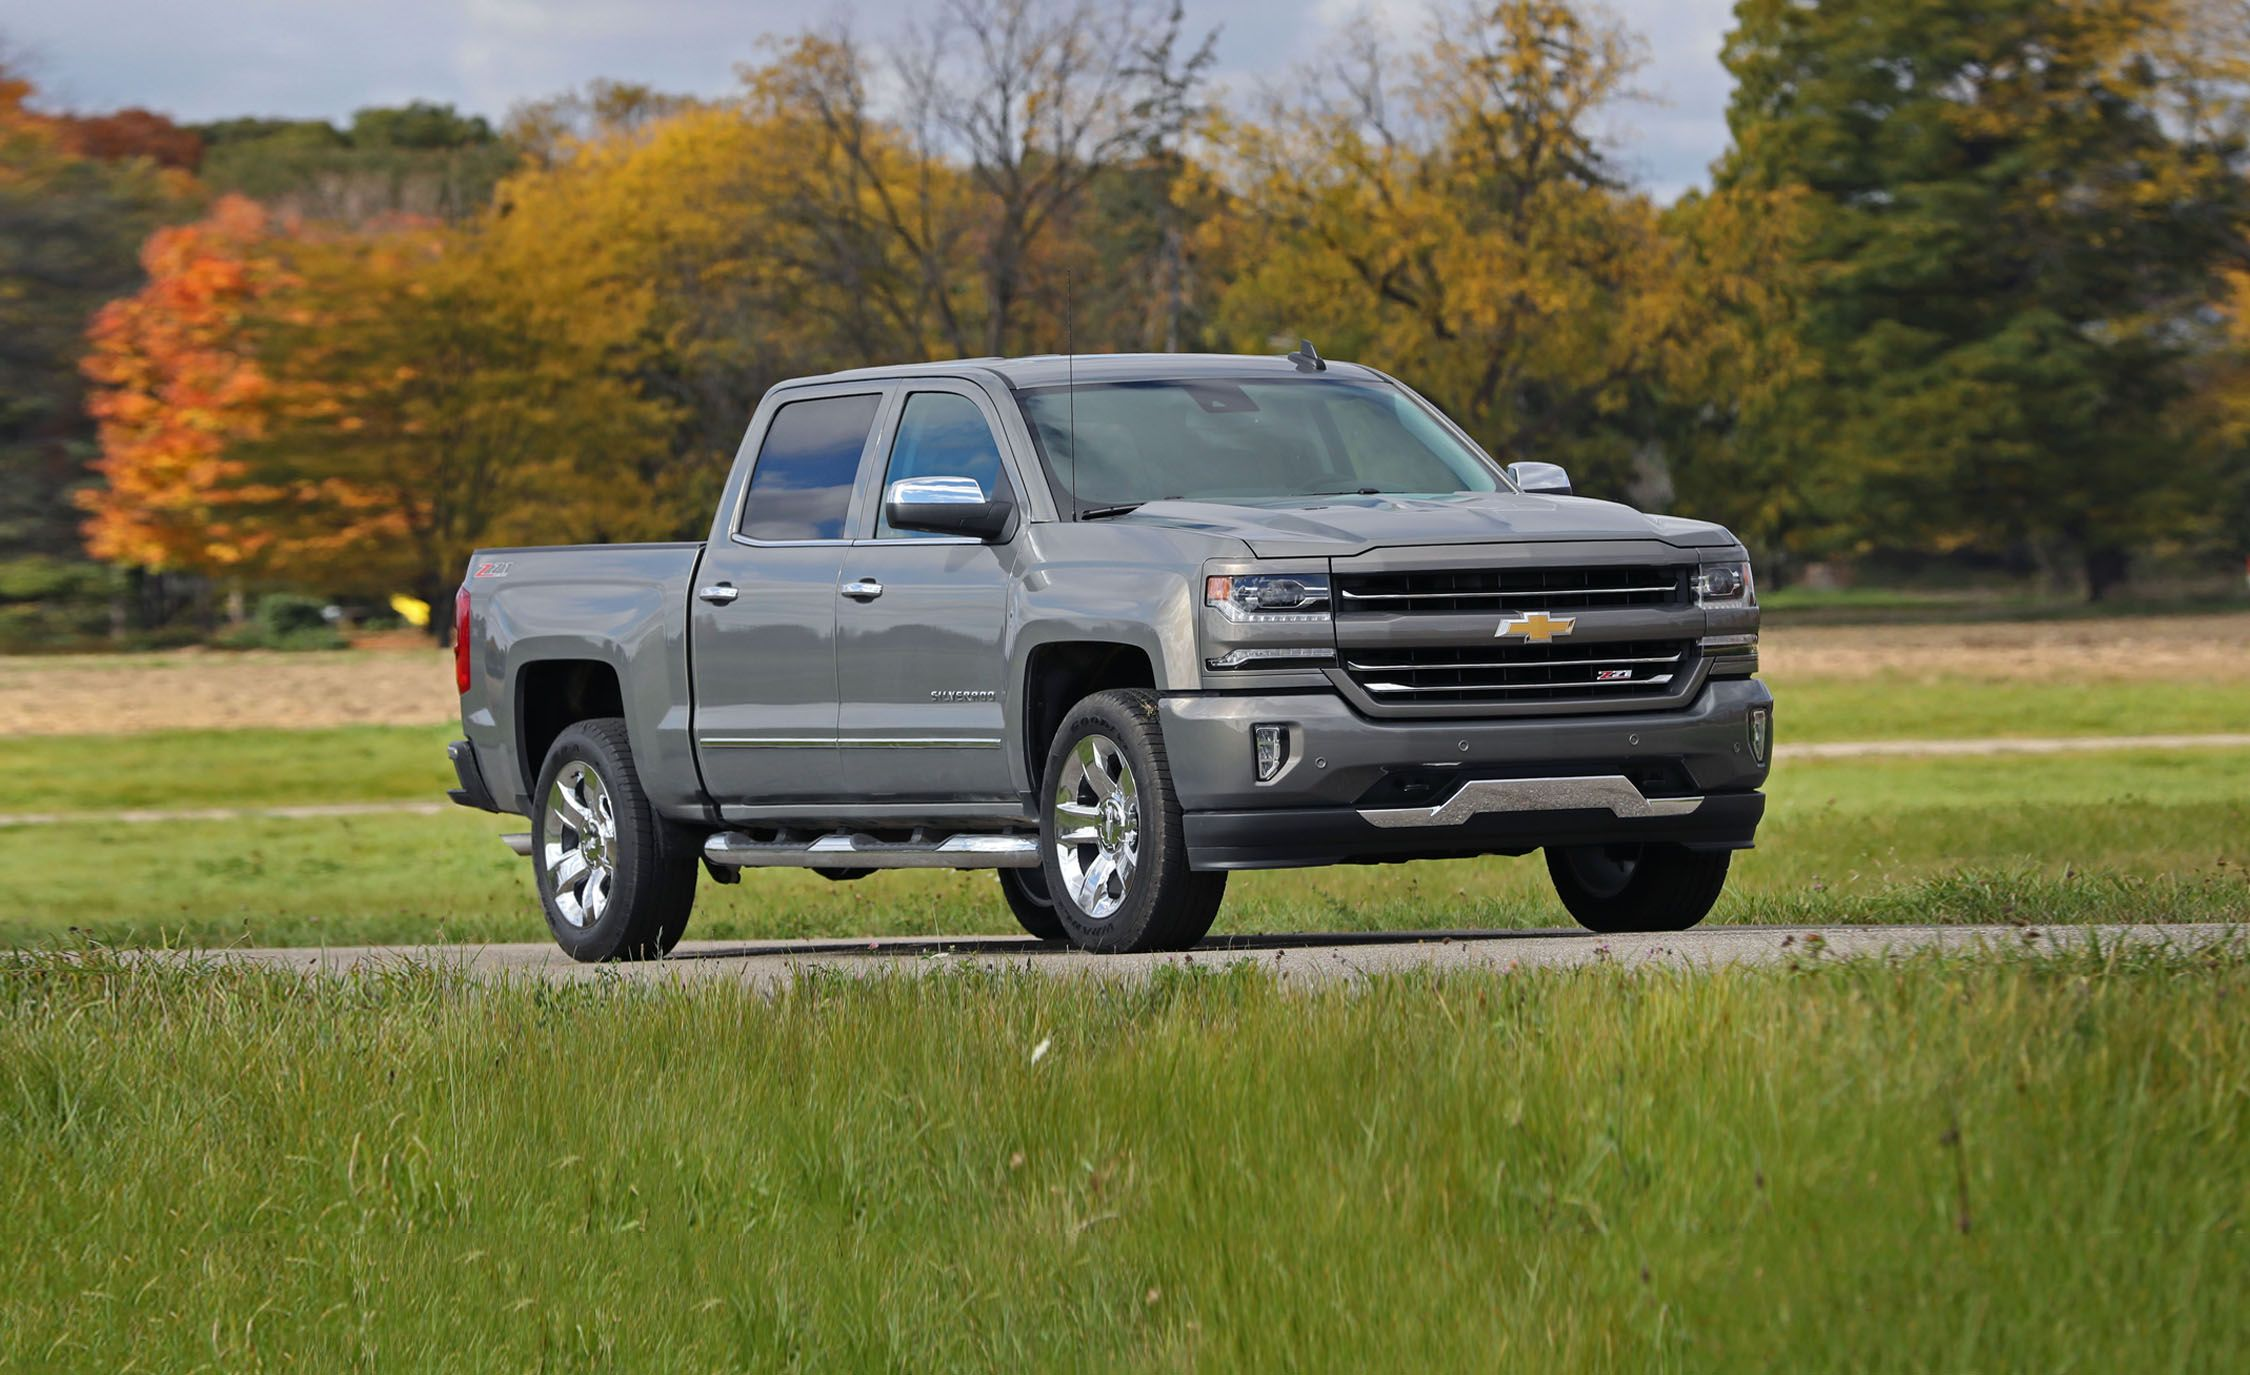 2018 Chevy Silverado >> 2018 Chevrolet Silverado 1500 In Depth Model Review Car And Driver